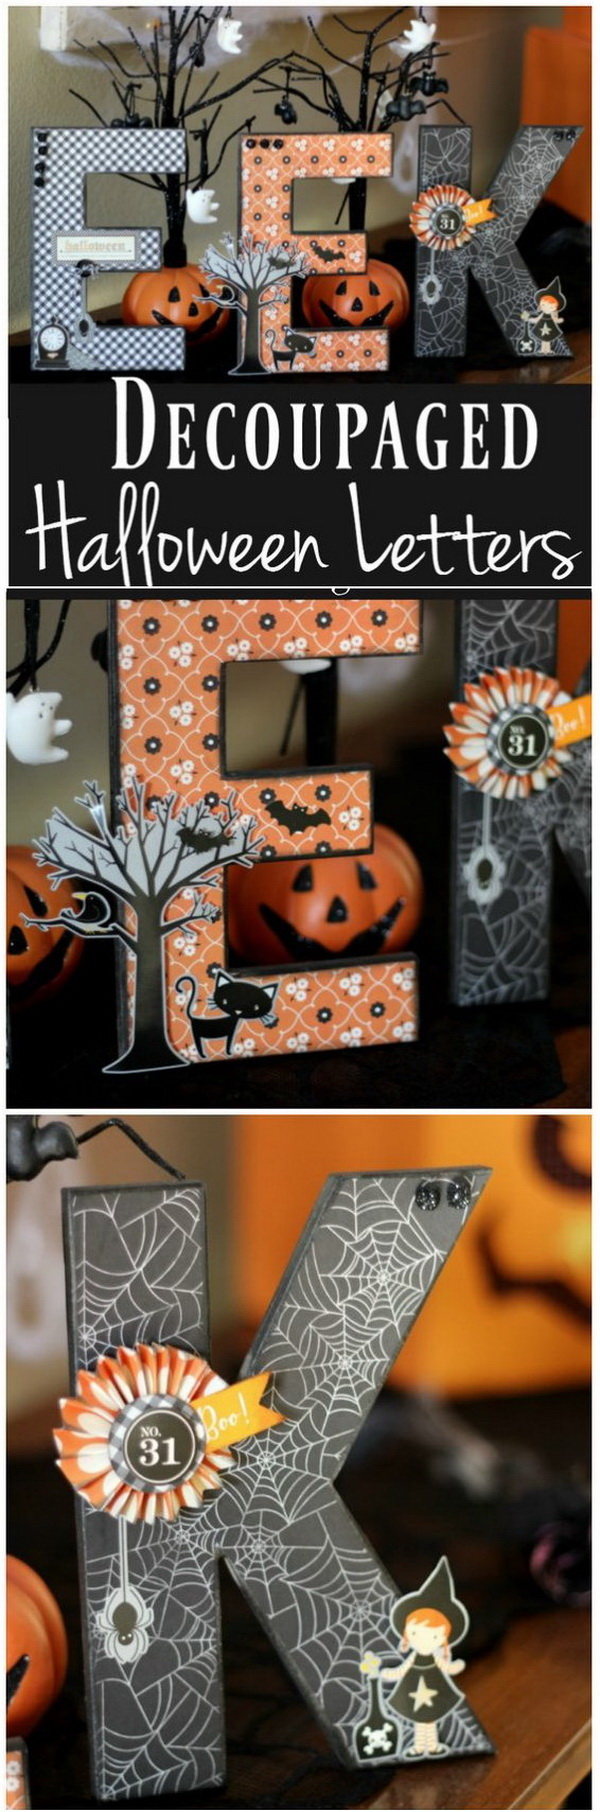 30 homemade halloween decoration ideas listing more. Black Bedroom Furniture Sets. Home Design Ideas